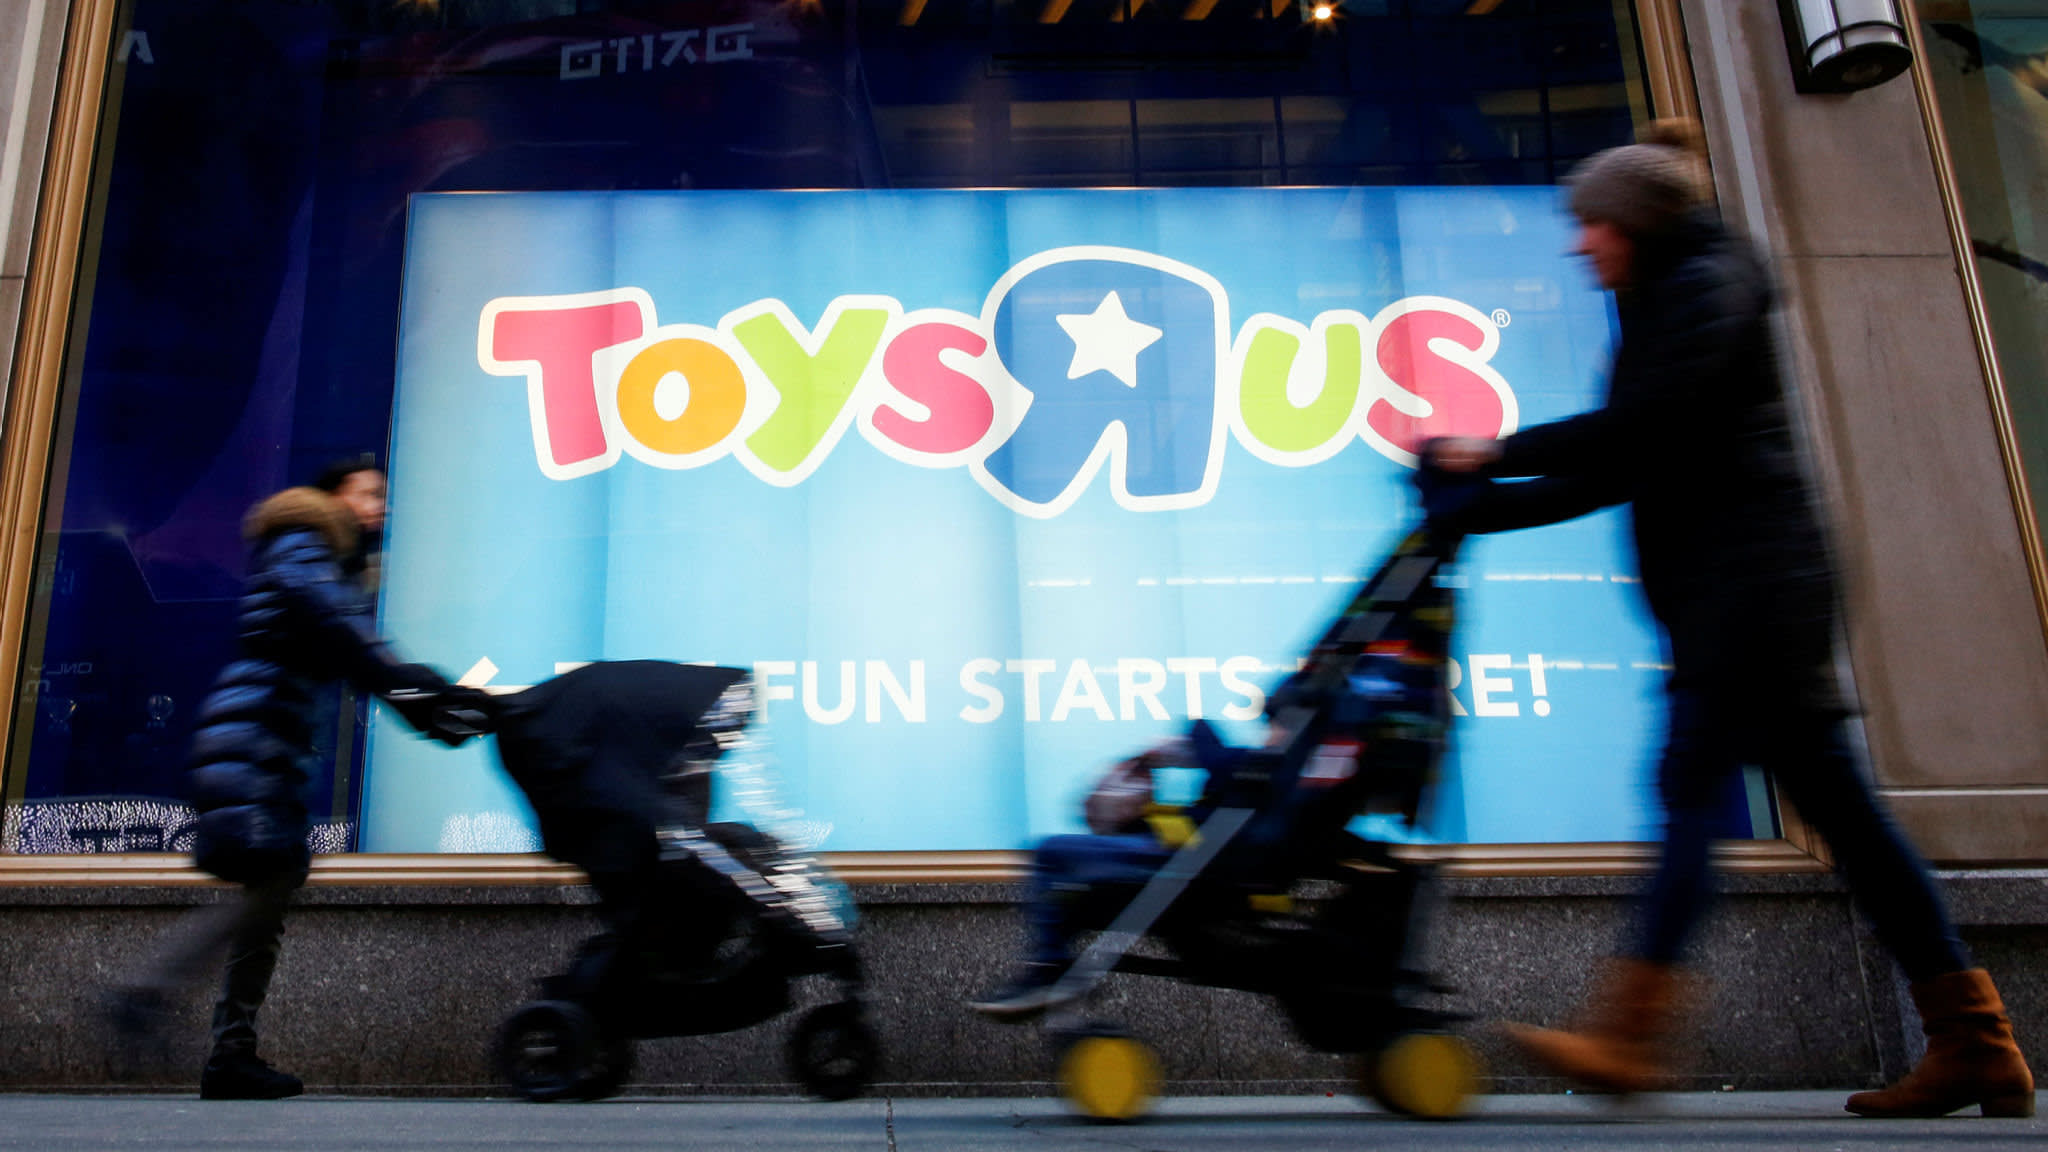 Retailers battle to win former Toys R Us customers